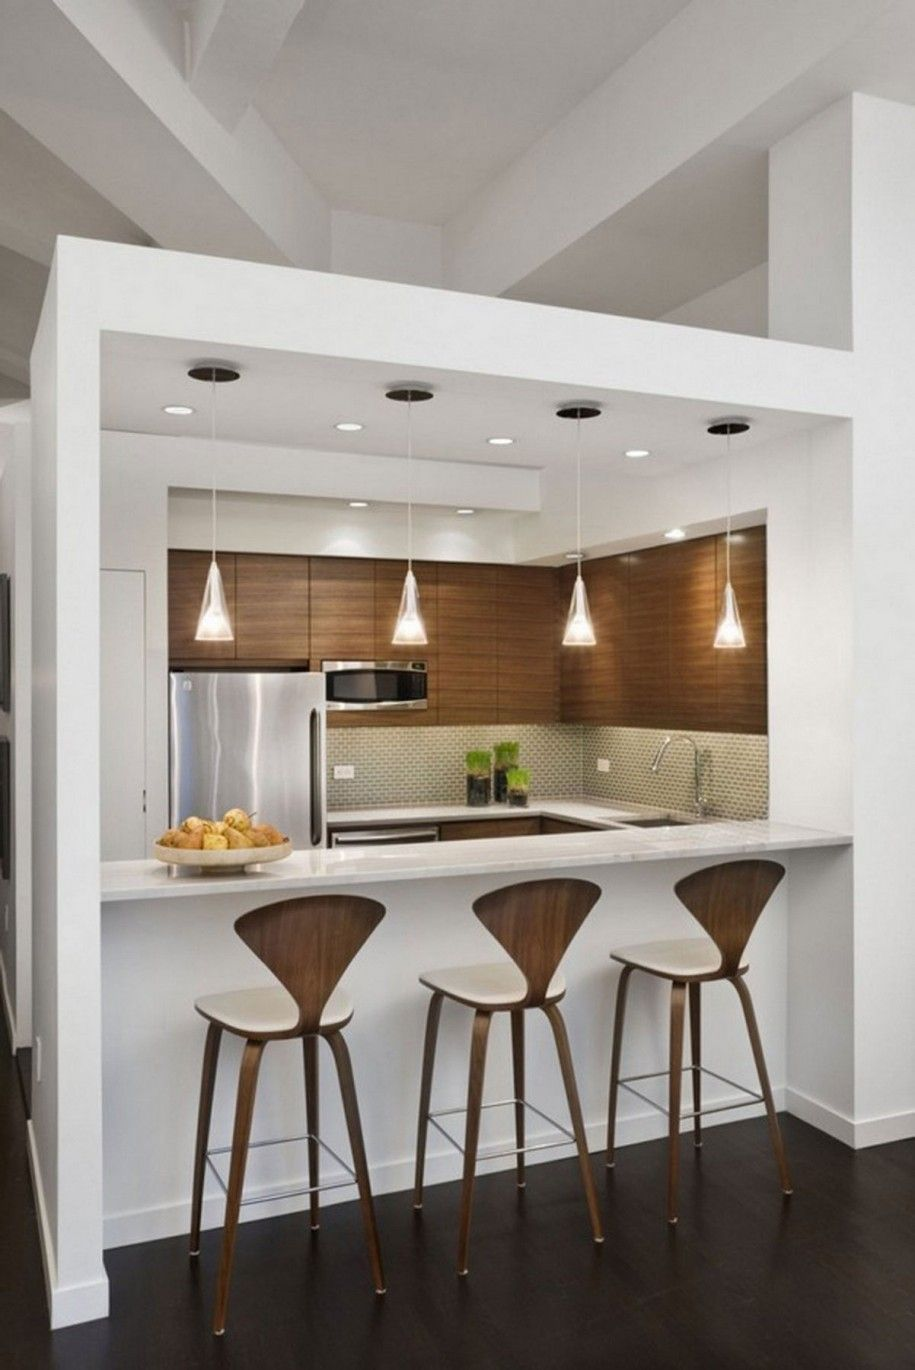 Good Best Fixture Of Kitchen Decorating Ideas: Mini Bar Small Kitchen Decoration  Ideas Modern House Beams Ceiling ~ Emsorter.com Kitchen Designs Inspiration